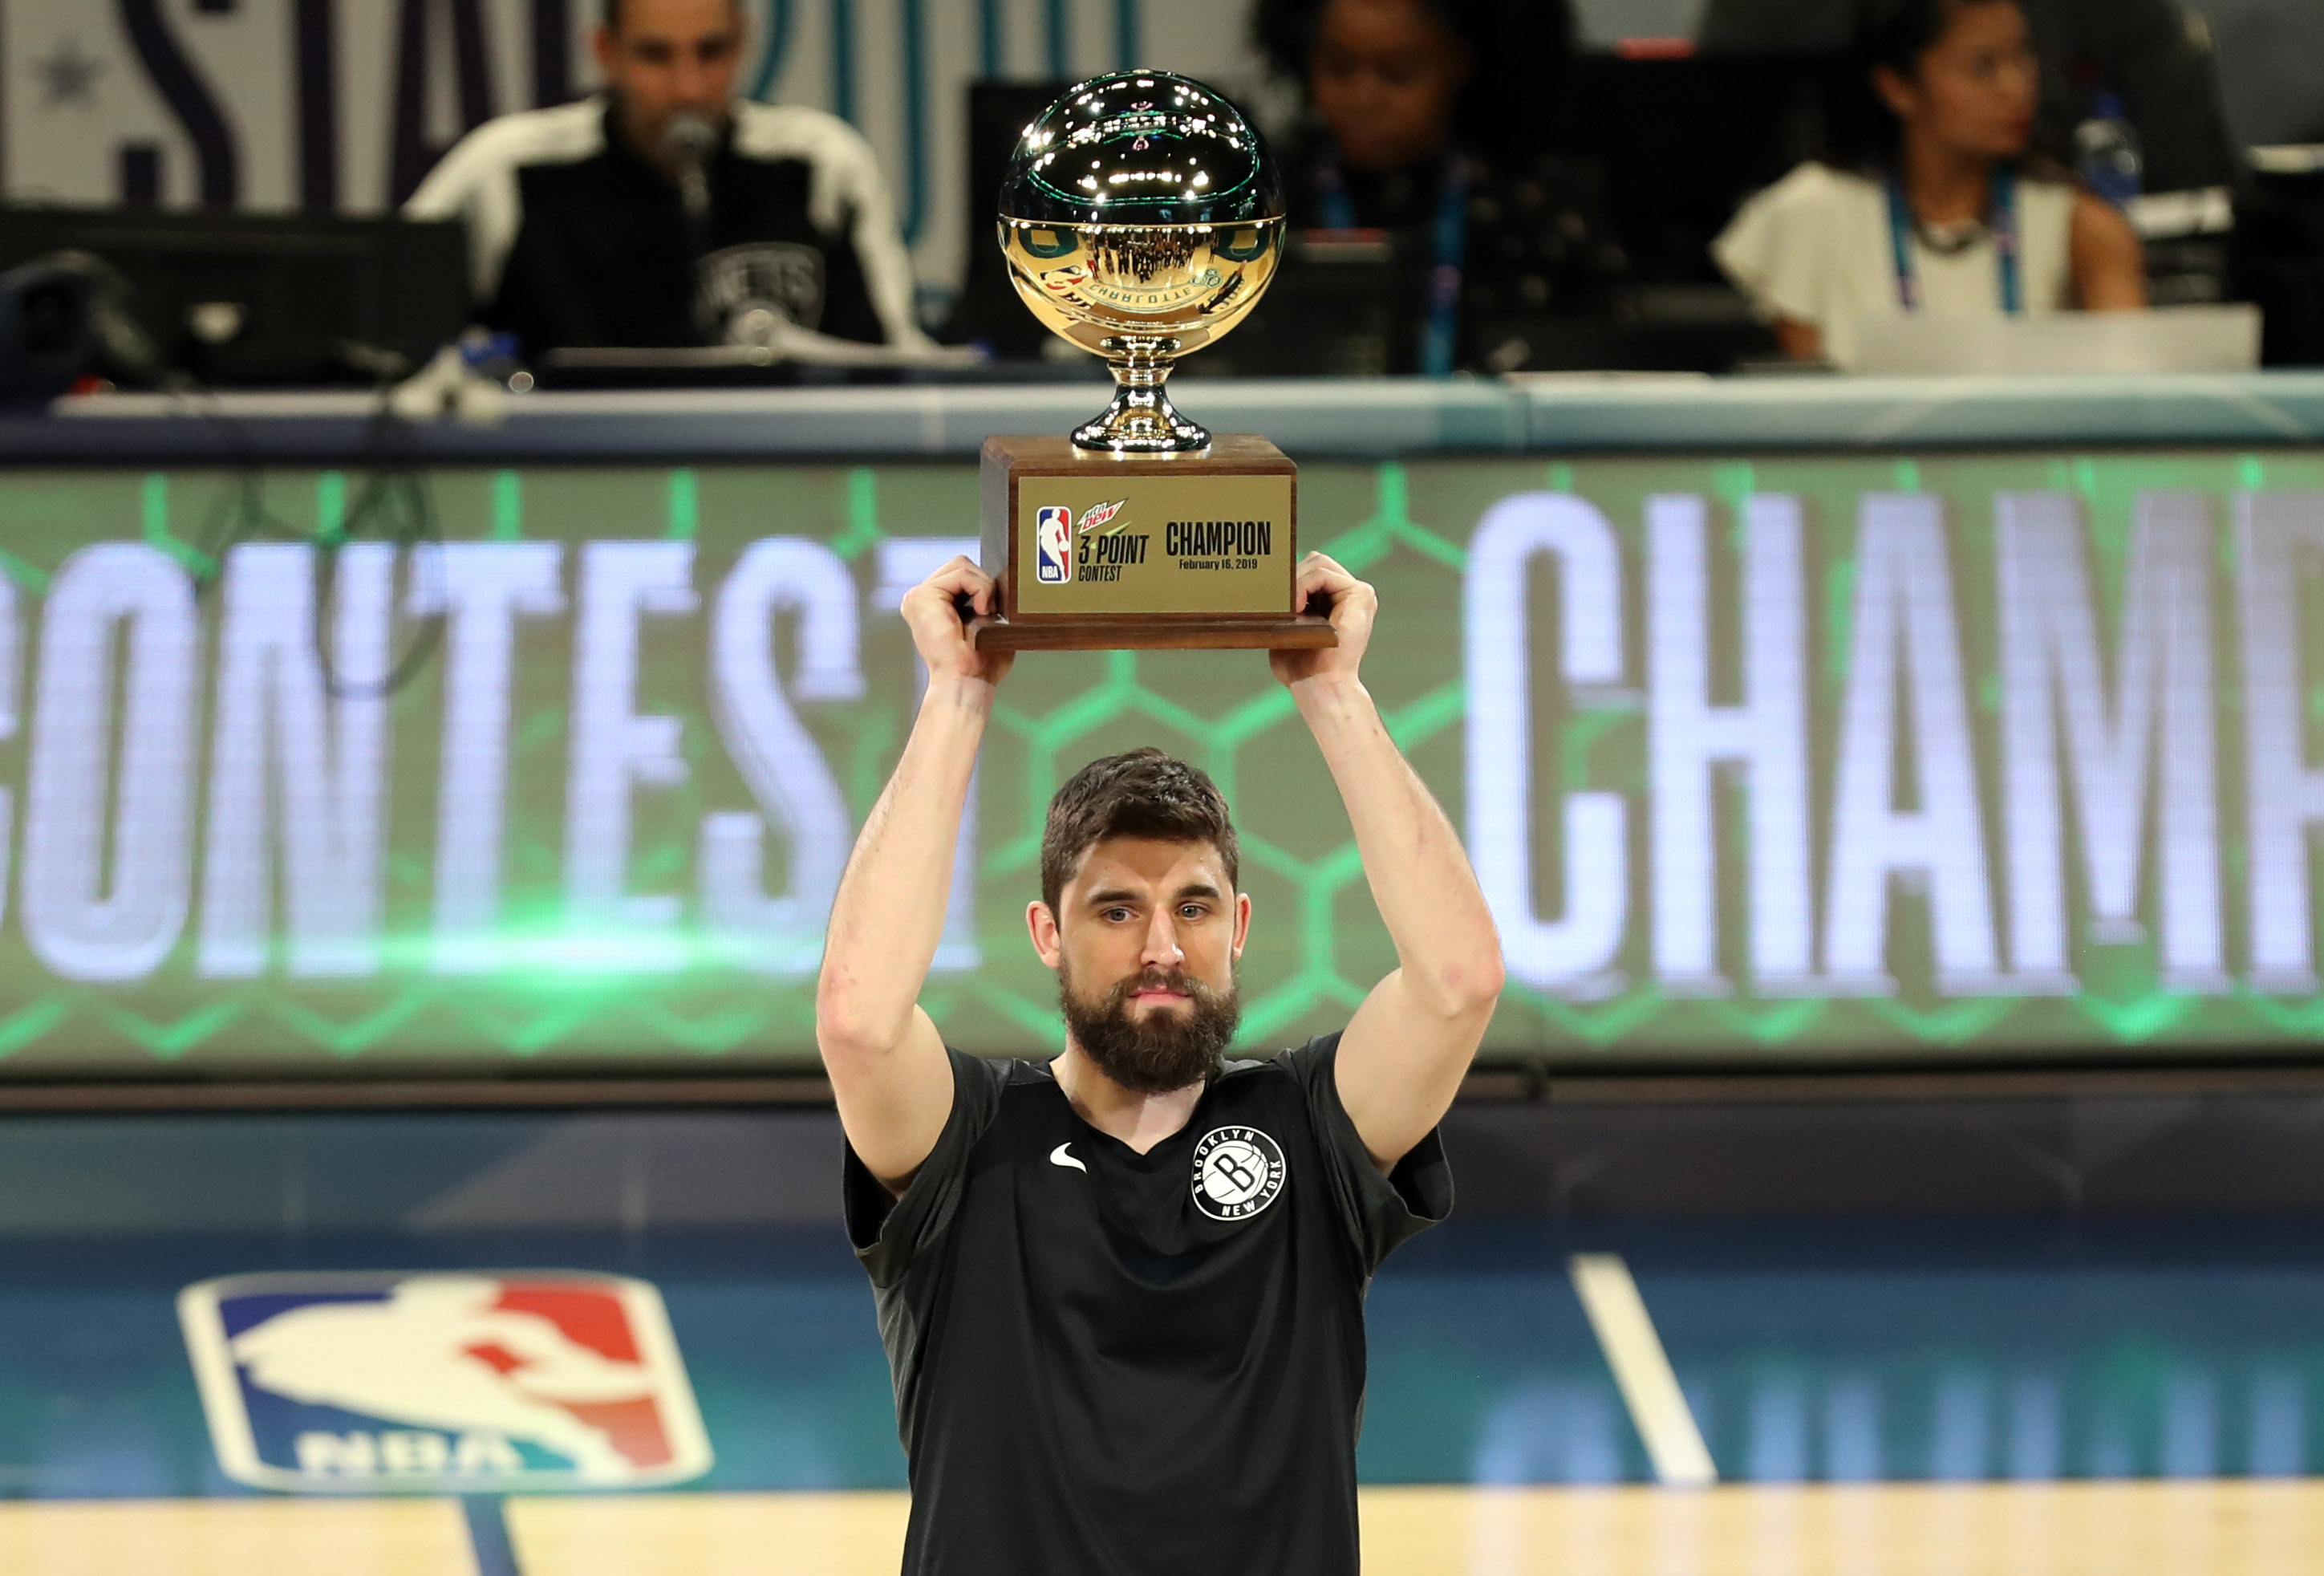 Joe Harris' 3-Point Shootout victory is only a surprise if you weren't paying attention